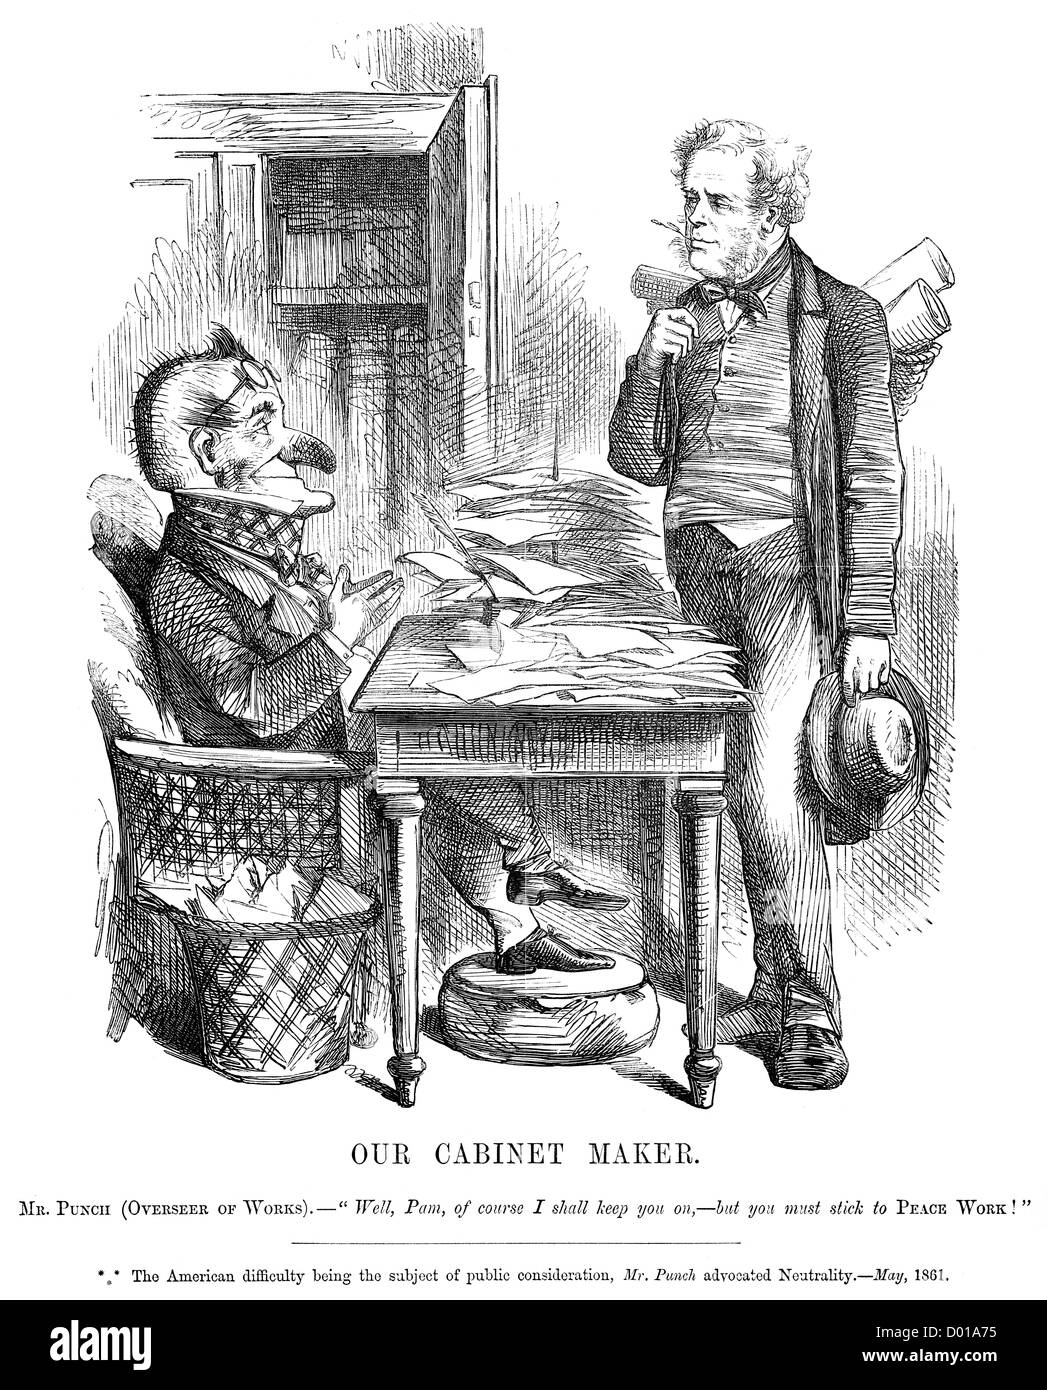 Our Cabinet Maker. Political cartoon about British reaction to the American Civil War, May 1861 - Stock Image